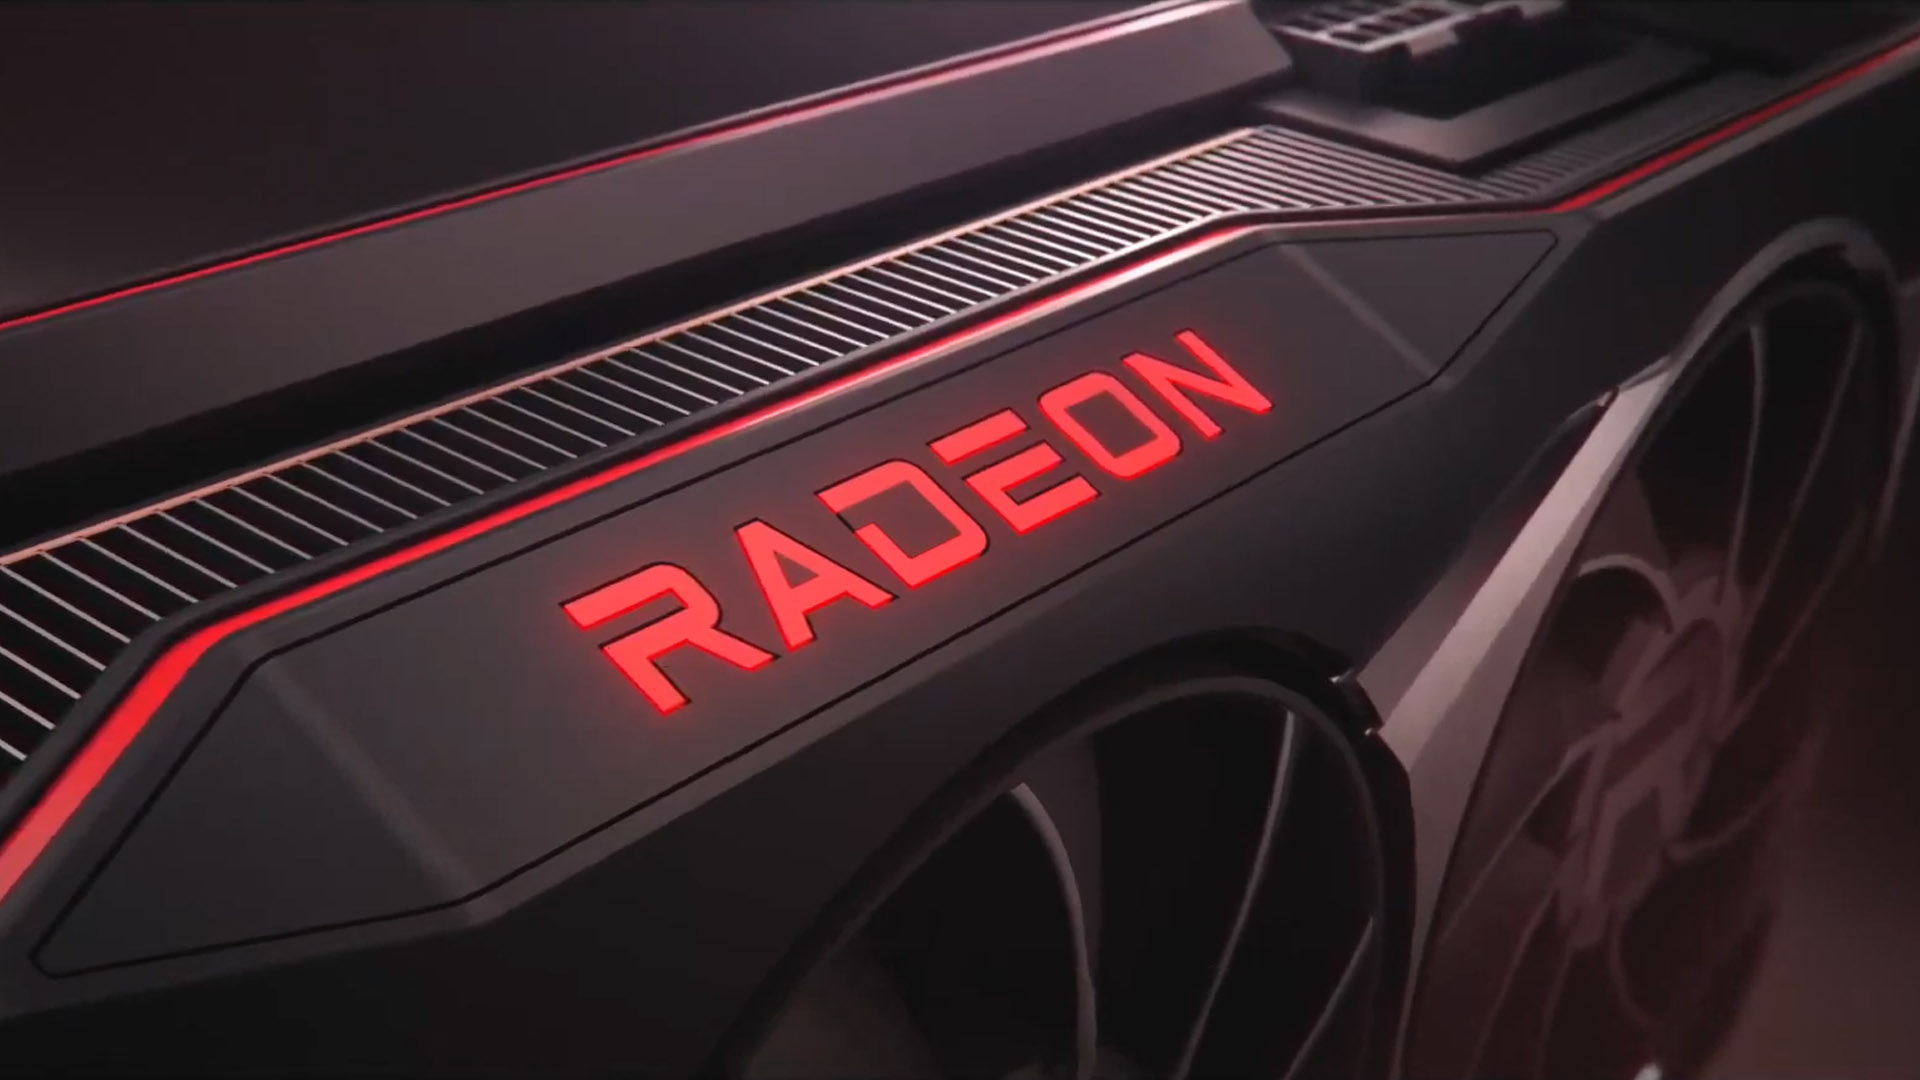 AMD RDNA 3 GPUs might support DisplayPort 2.0, making 16K HDR possible